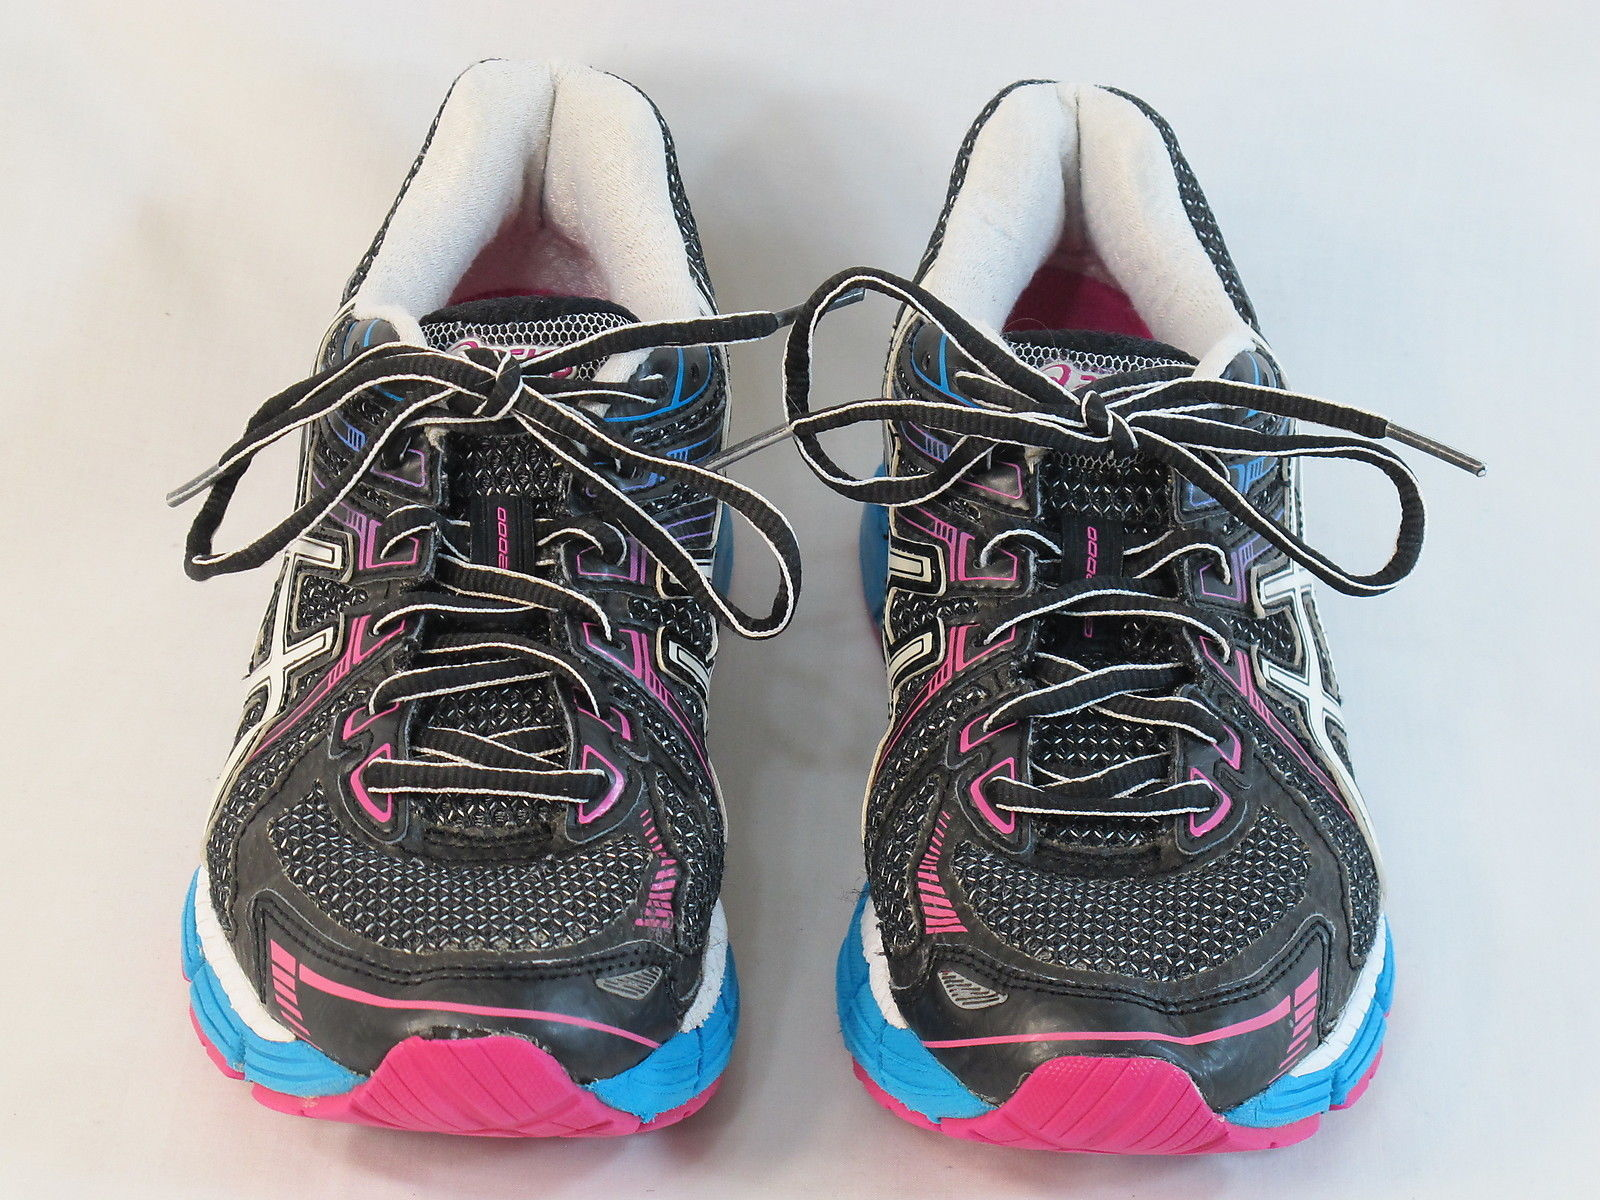 ASICS GT 2000 2 Running Shoes Women's Size 8 and 50 similar